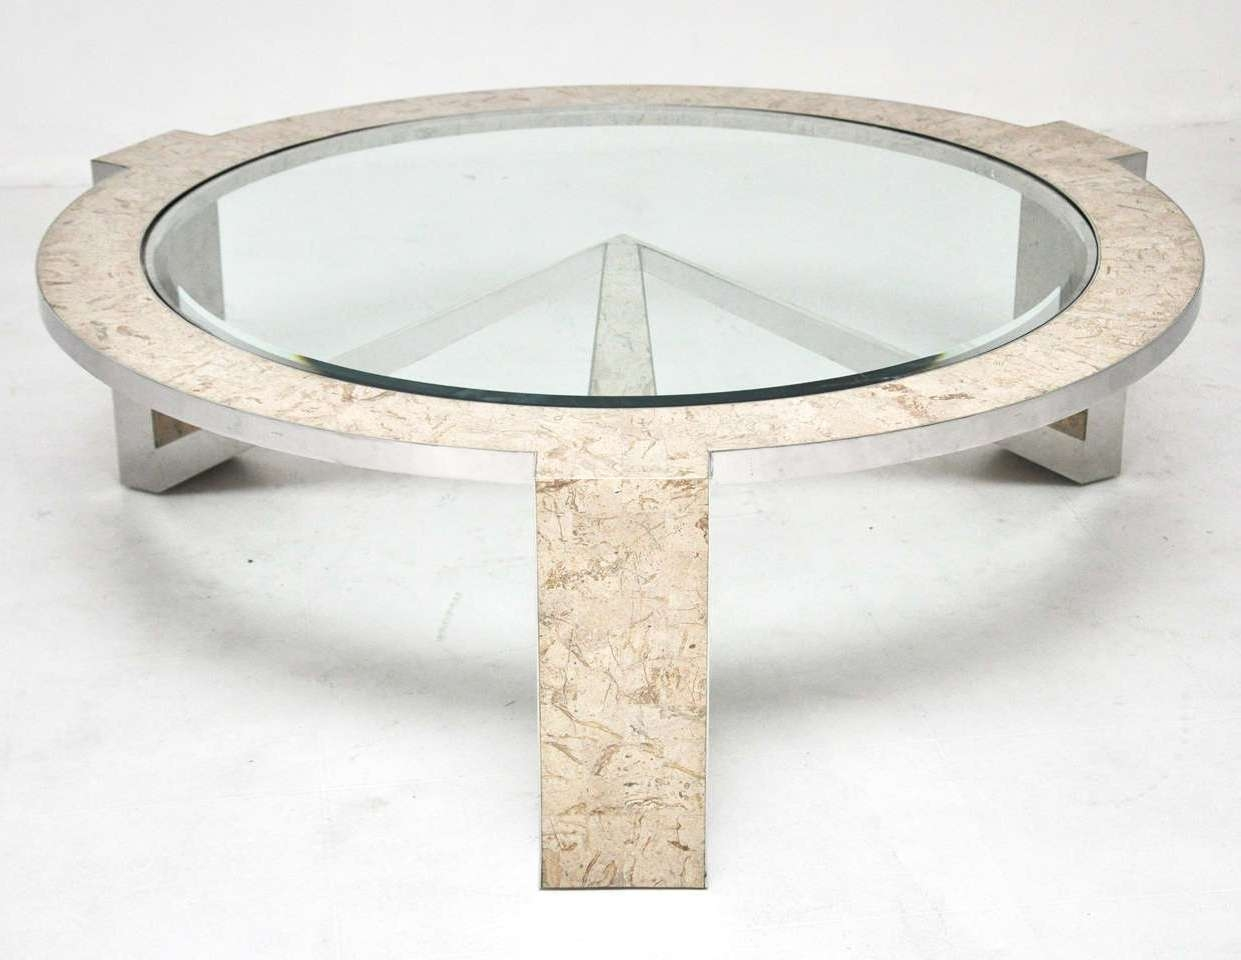 Classy Stone And Glass Coffee Tables For Home Interior Design With Regard To Latest Stone And Glass Coffee Tables (View 7 of 20)